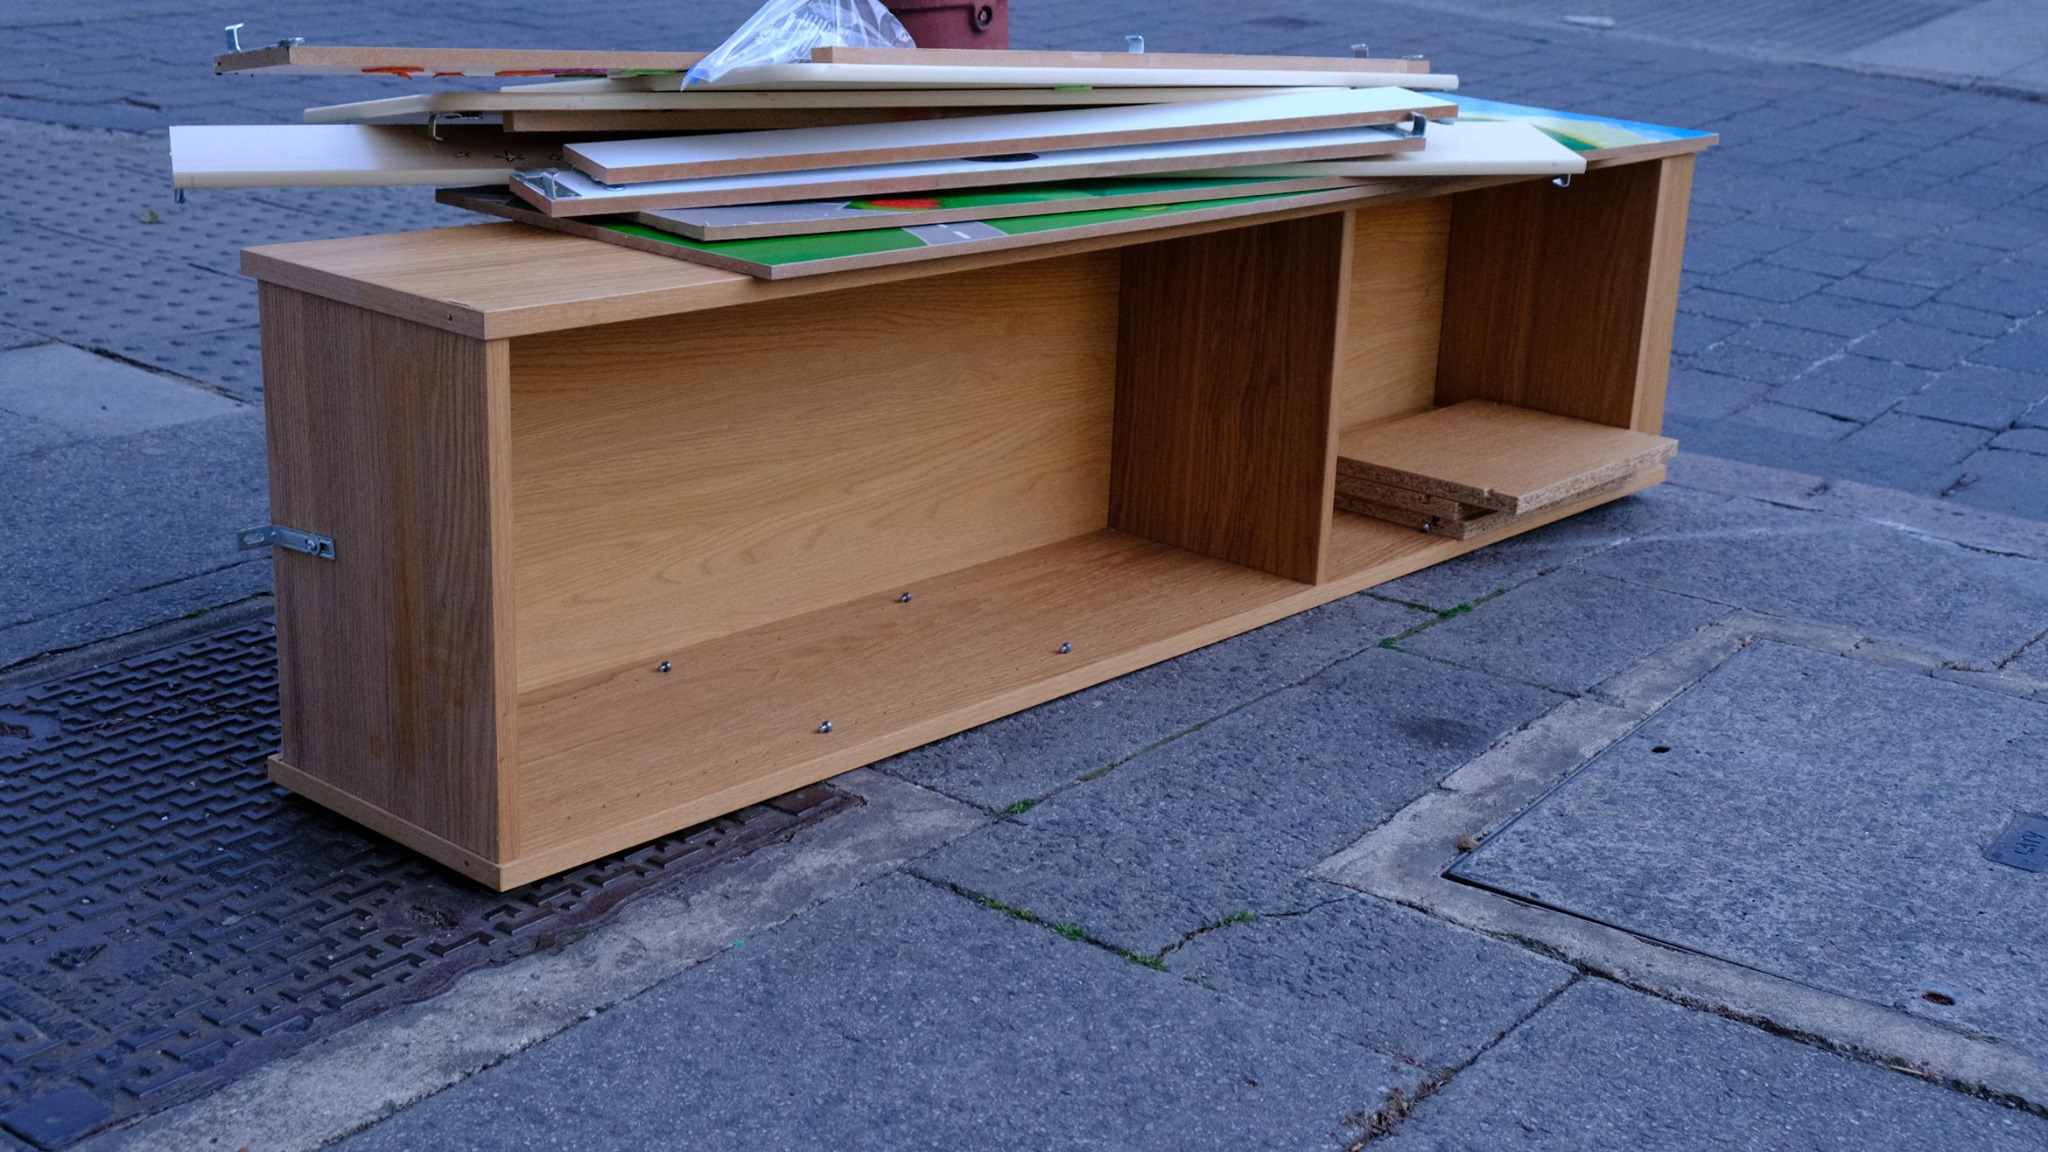 <h5>Dave Syer - Street Furniture</h5><p>																	</p>